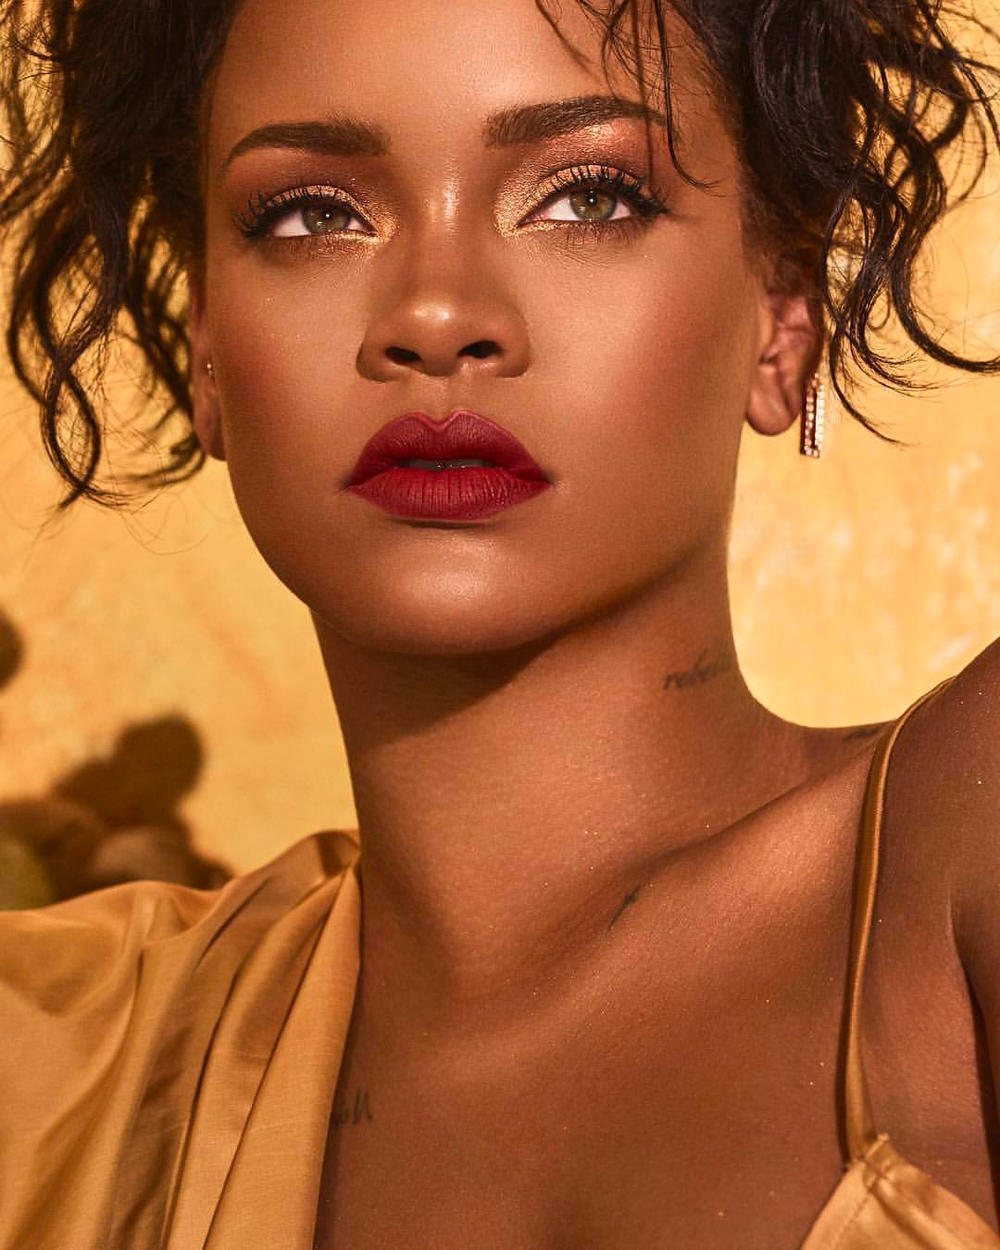 Rihanna Fenty Beauty Moroccan Spice Eyeshadow Palette Makeup Release Summer July 6 2018